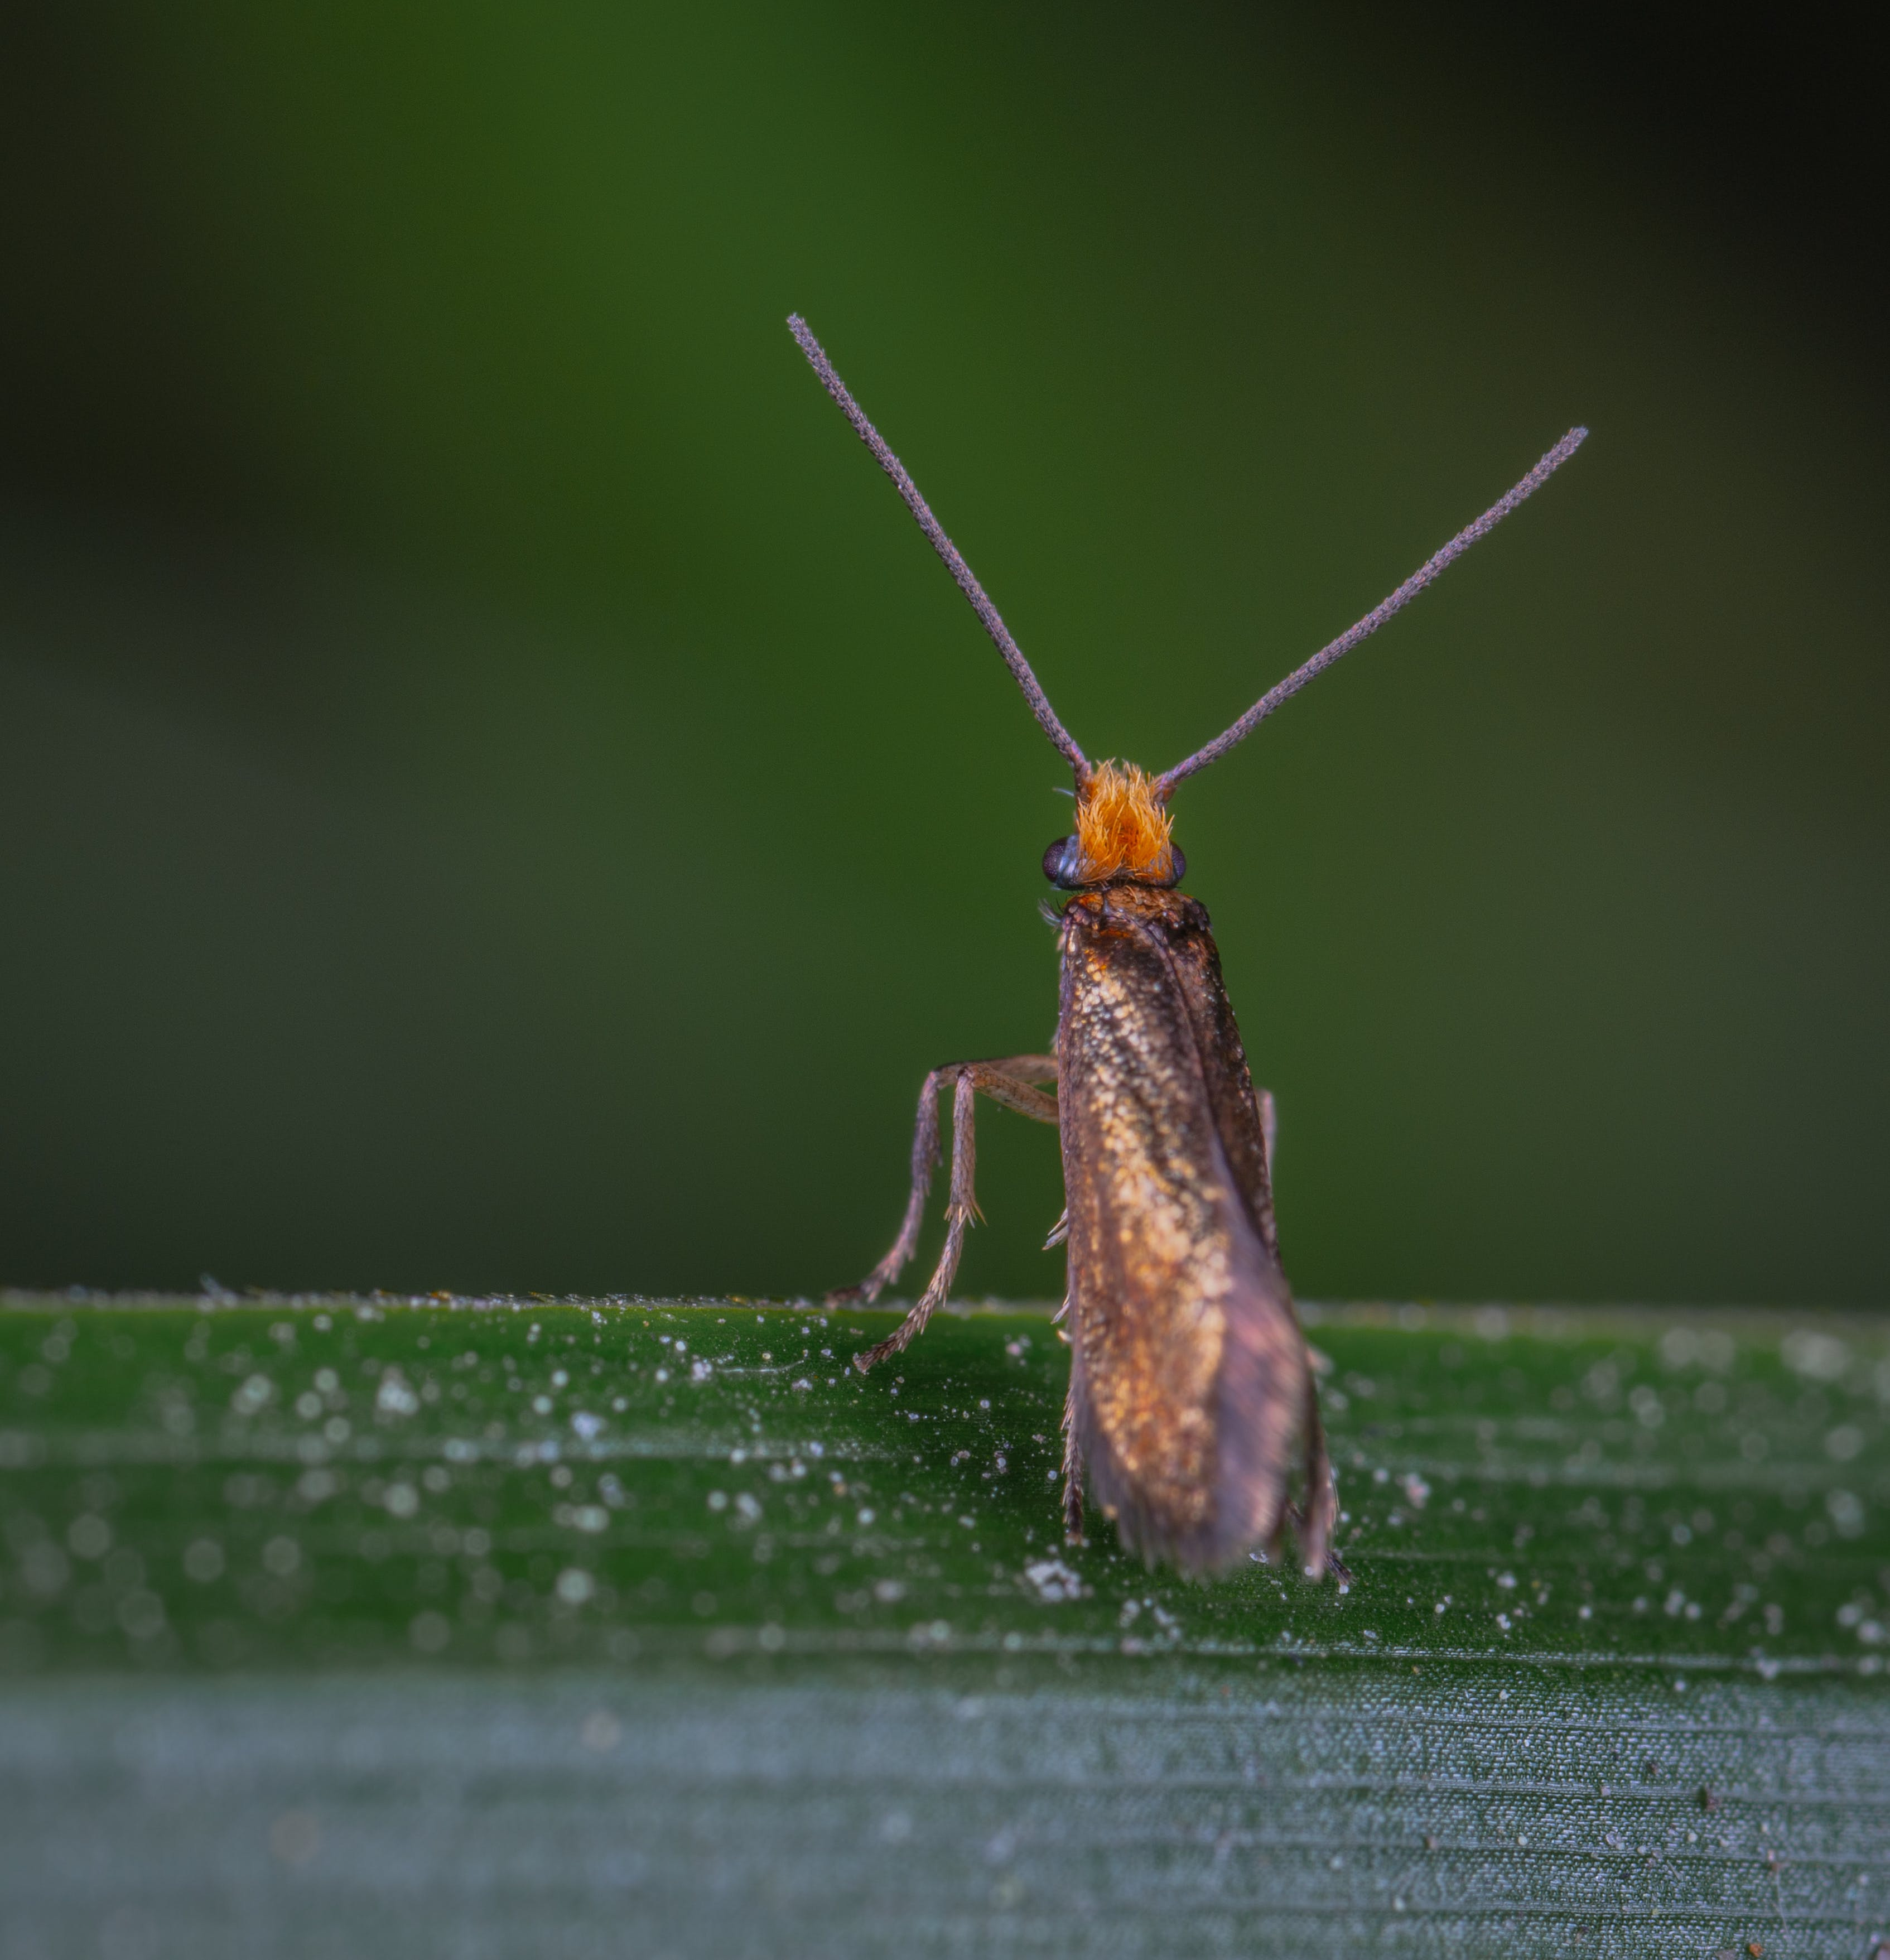 Brown and Orange Insect